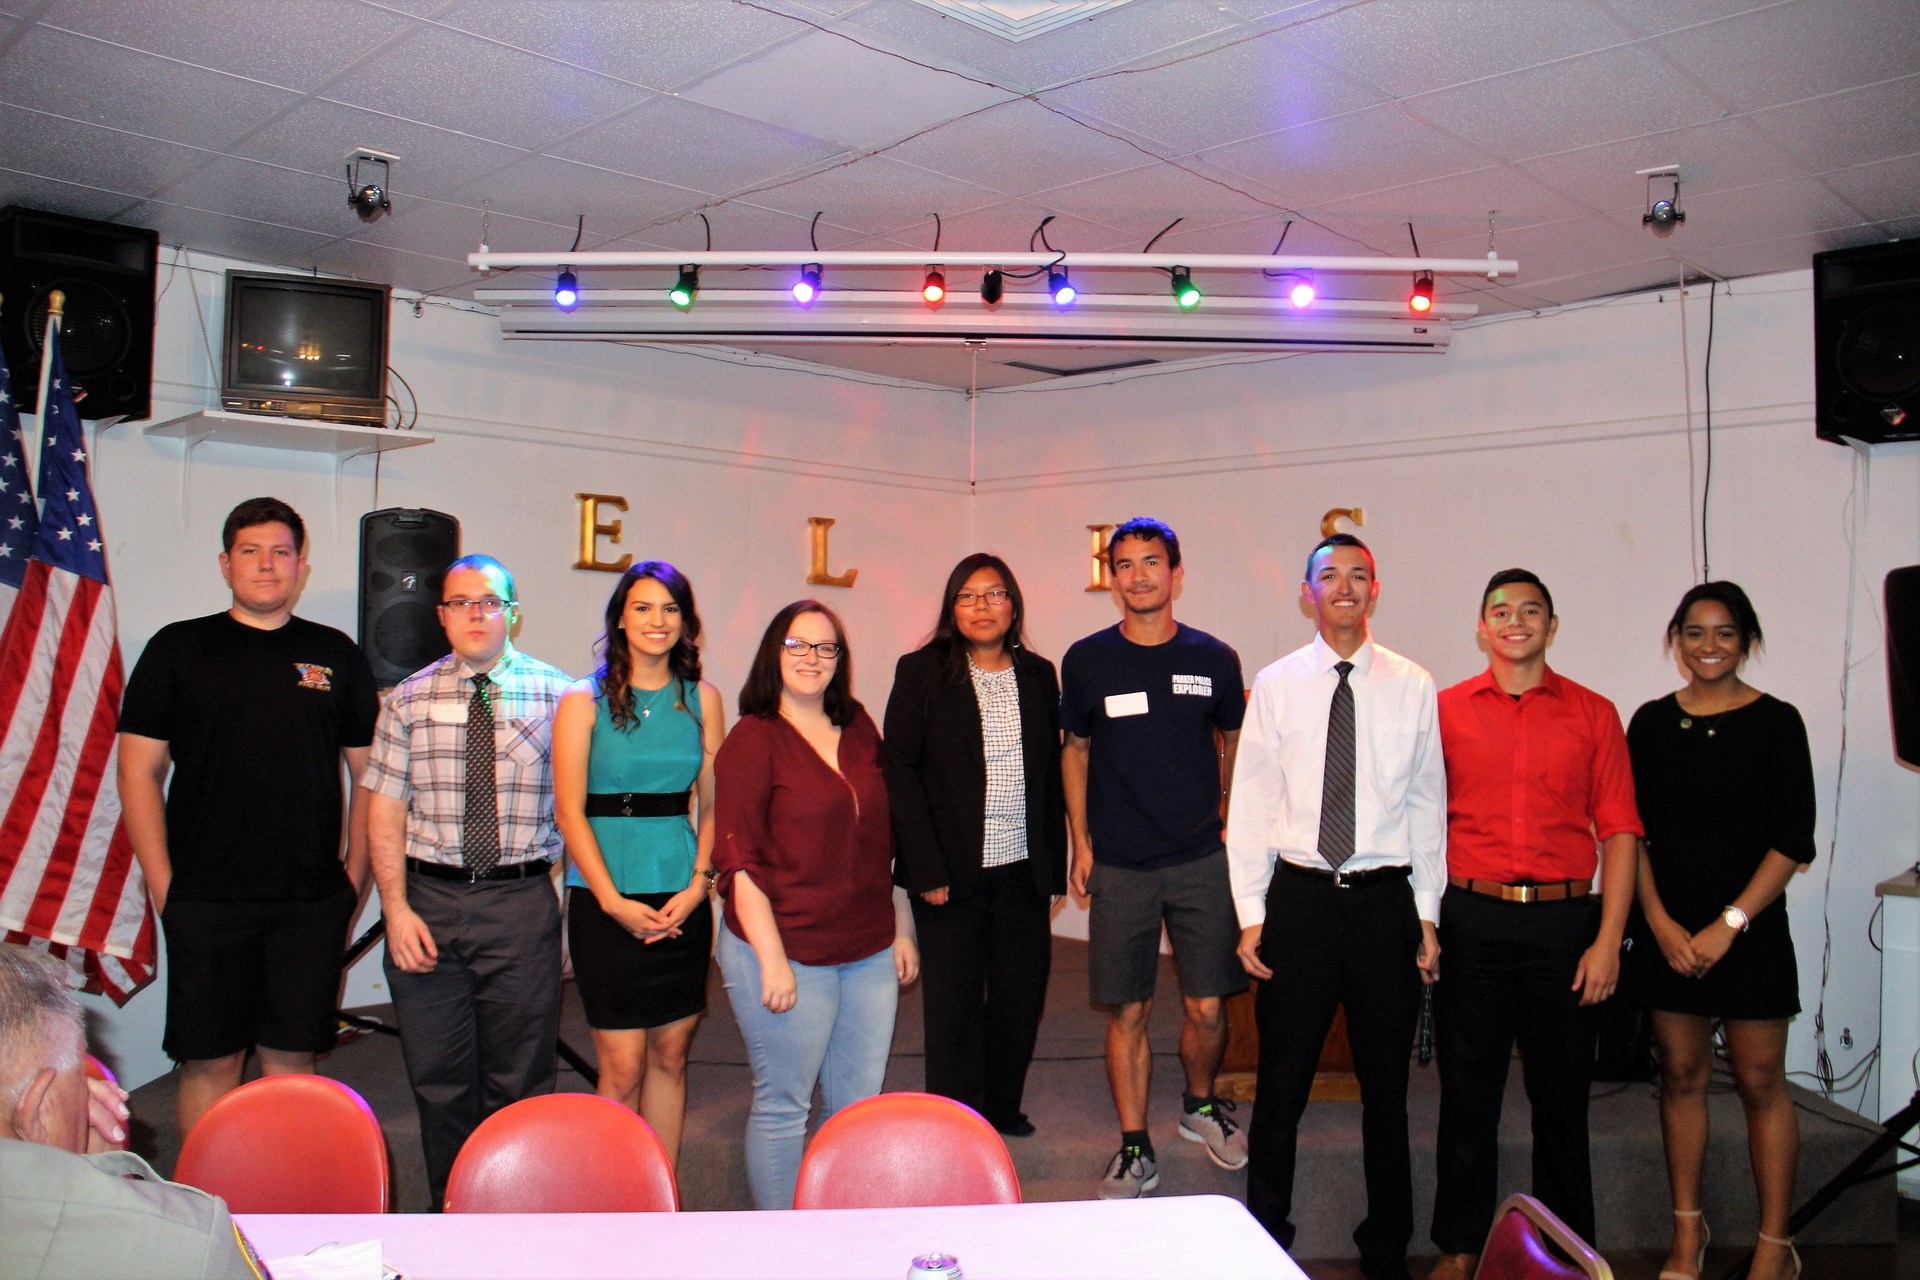 High school students at Elks Lodge Scholarship